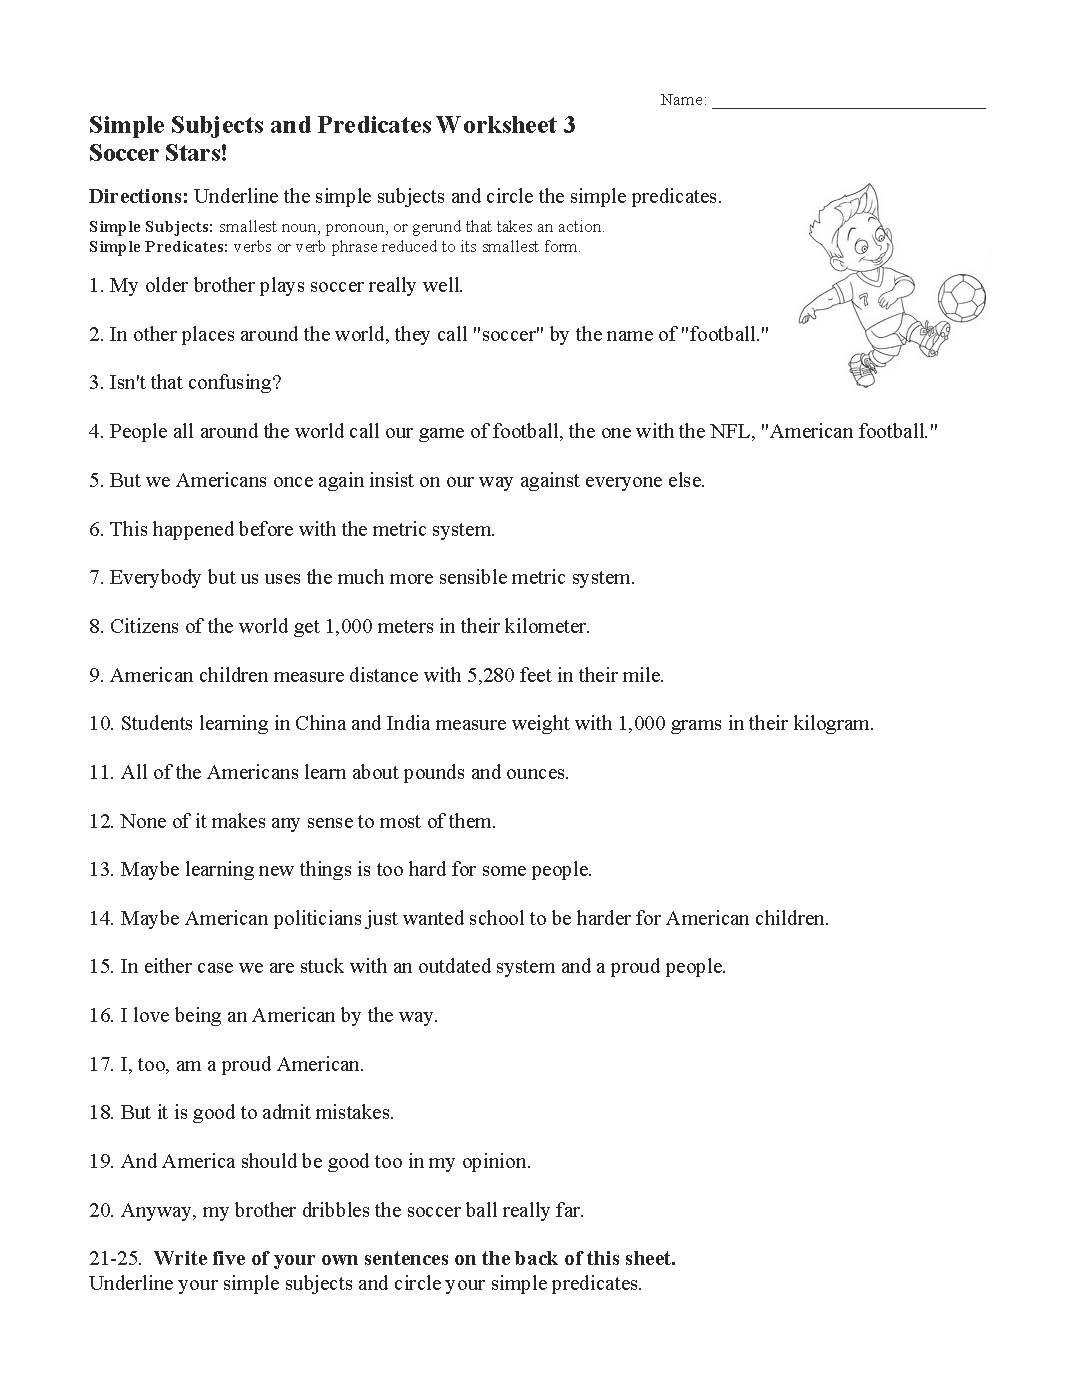 Simple Subjects And Predicates Worksheet 3